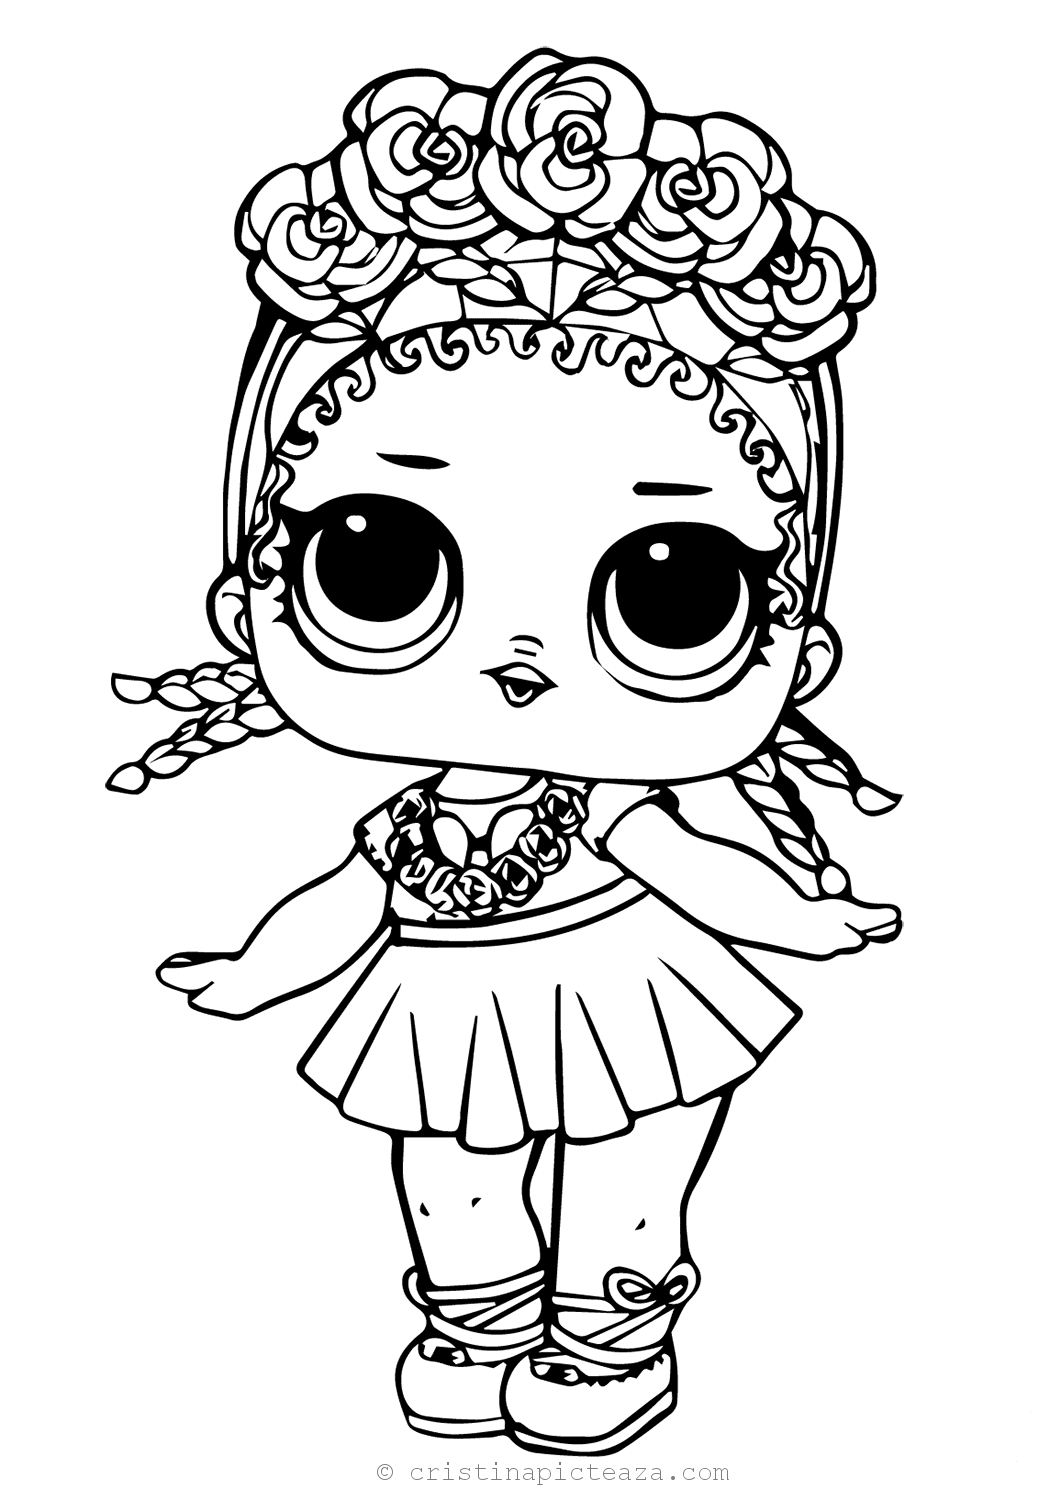 LOL Coloring pages - Lol Dolls for Coloring and Painting